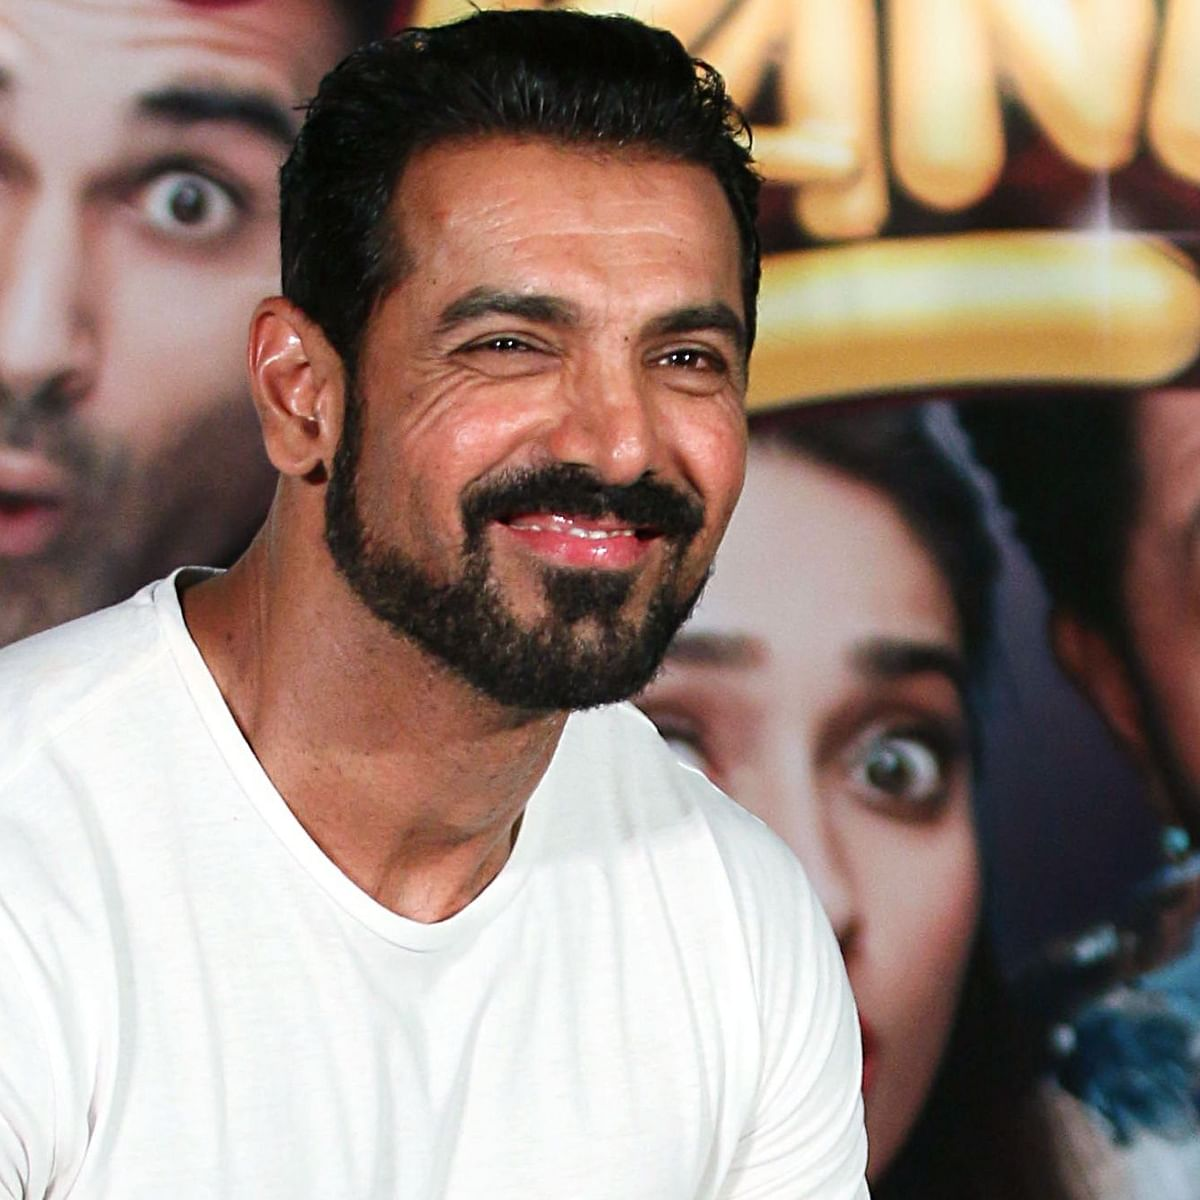 John Abraham says he is still 'struggling' and 'trying to make a mark' in Bollywood